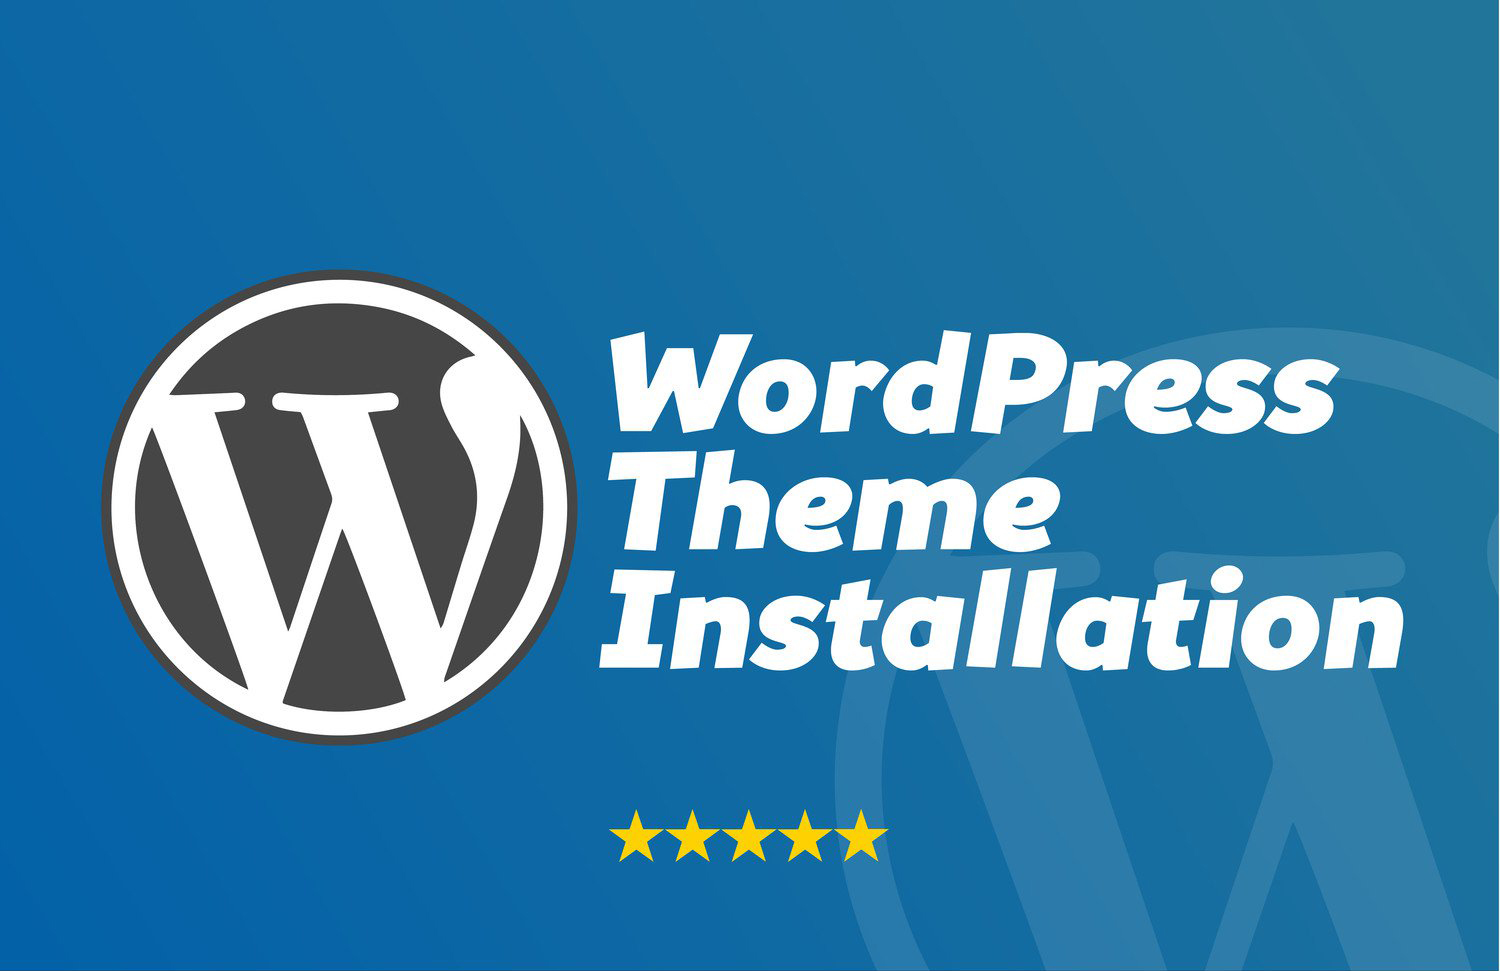 WordPress Theme Installation Tutorial